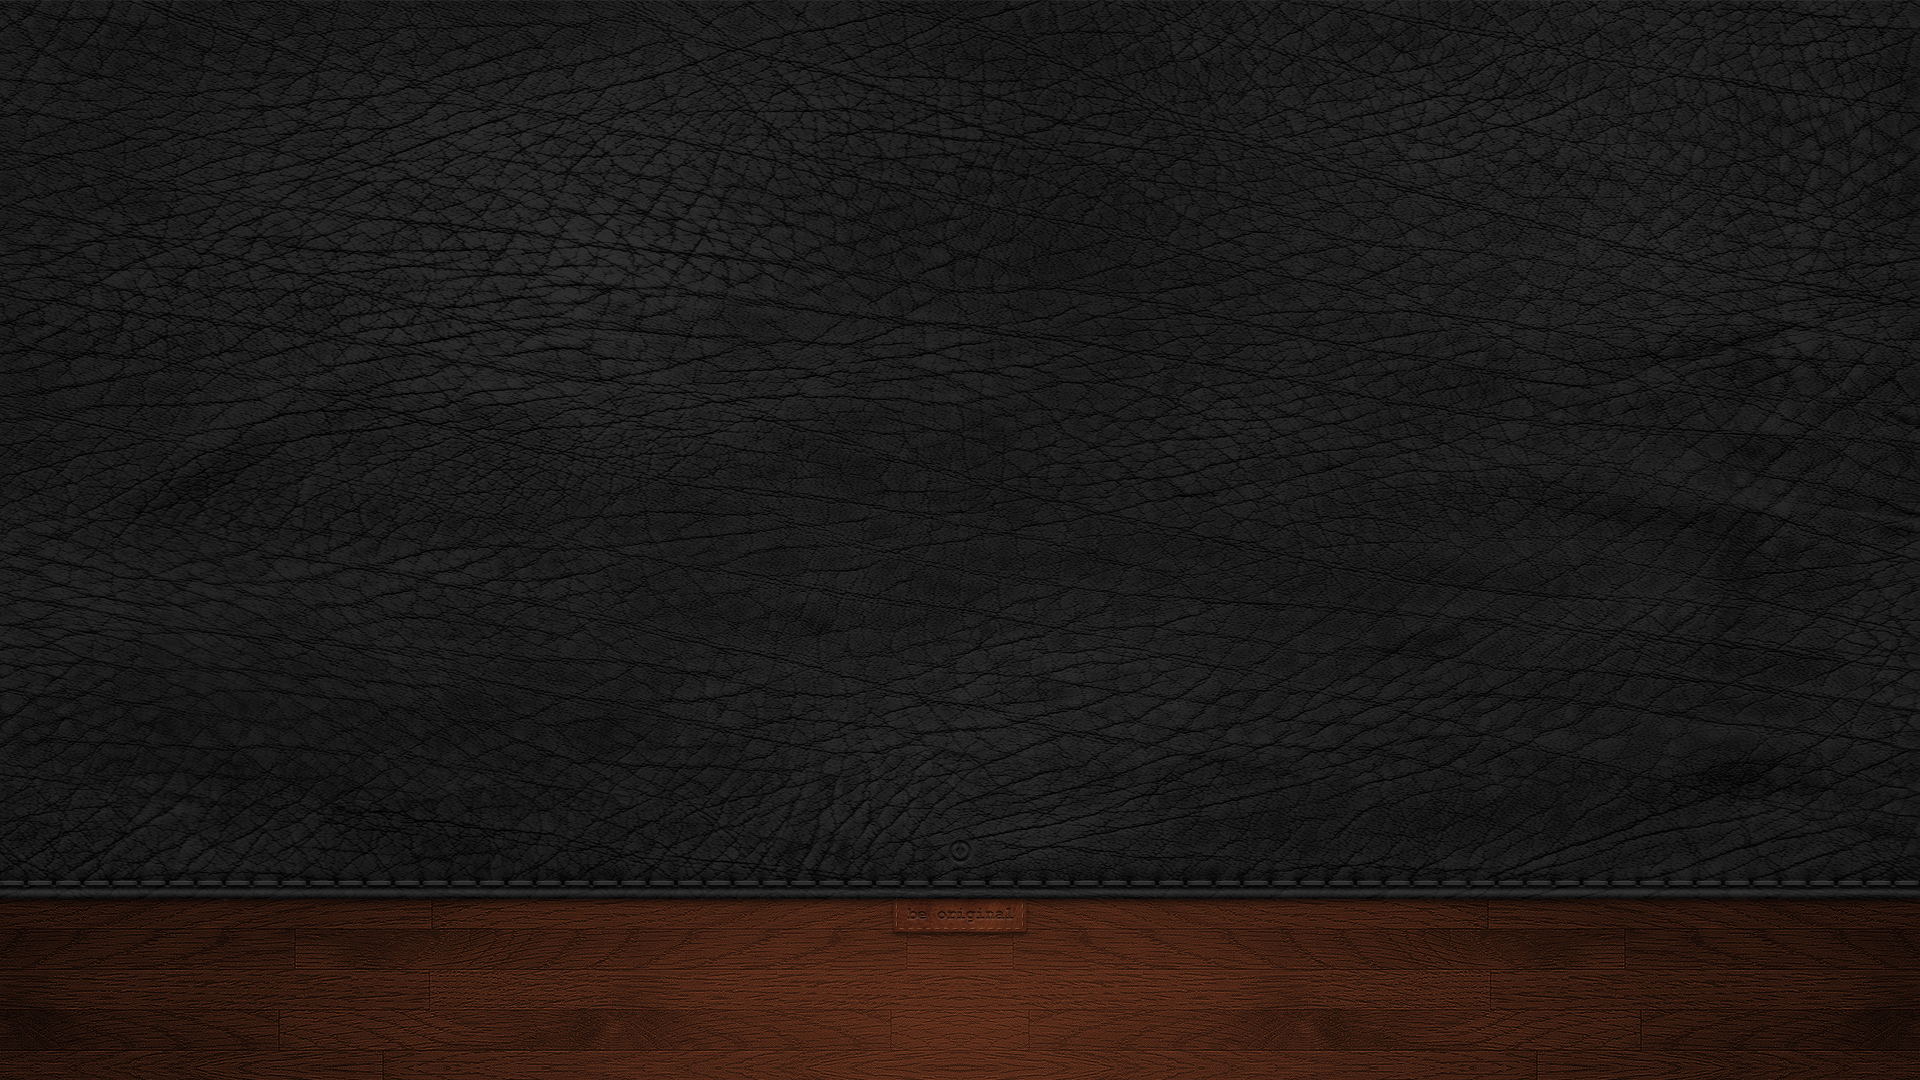 Leather Wallpapers Leather Backgrounds 1920x1080